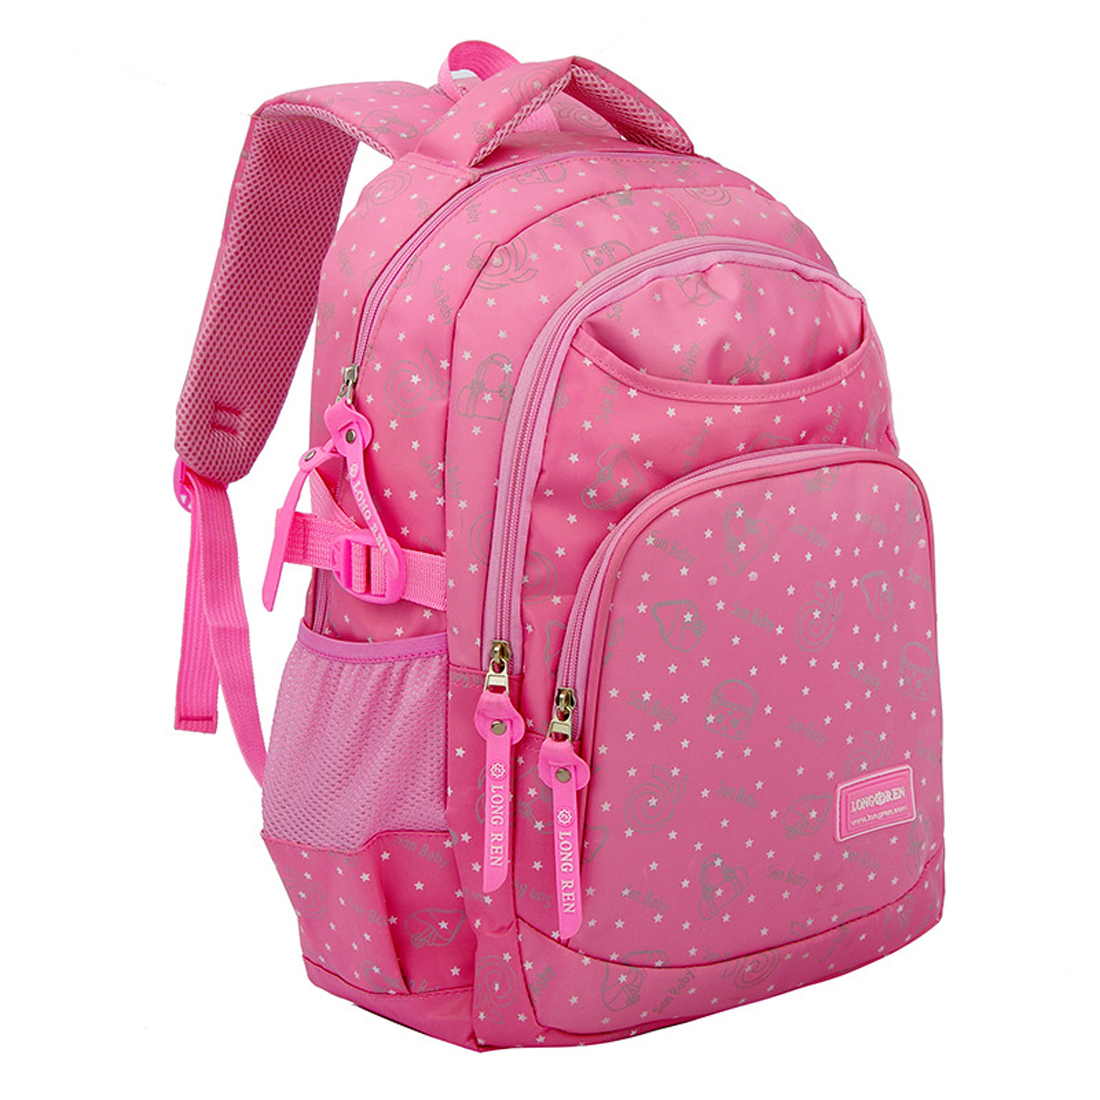 School Bags,Coofit Lovely Cartoon Girls Backpack School Bookbag Daypack Book Bags for Child Kids Girls Students